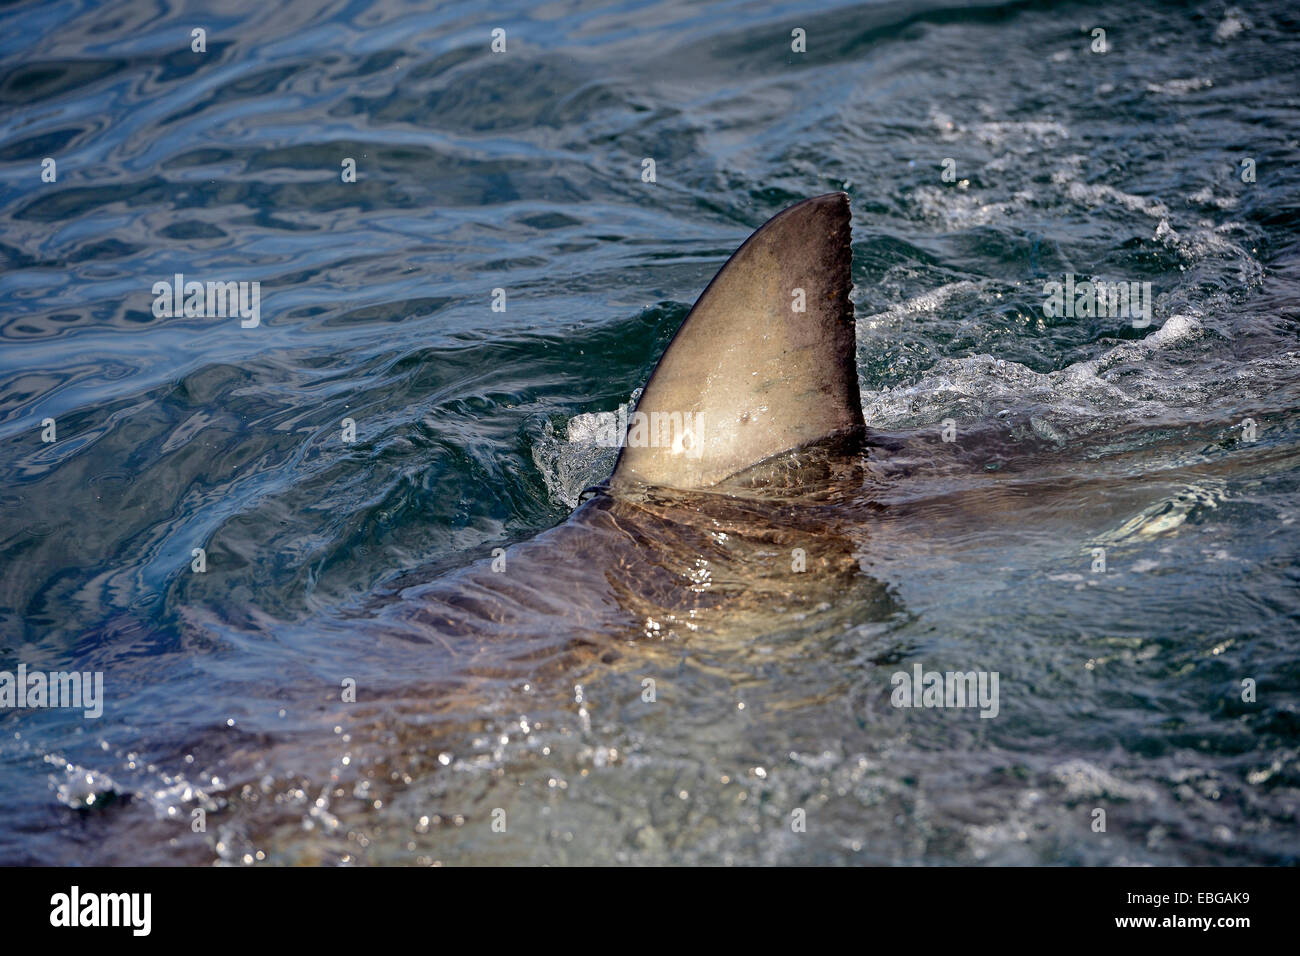 Great White Shark (Carcharodon carcharias), dorsal fin, Seal Island, Western Cape, South Africa - Stock Image